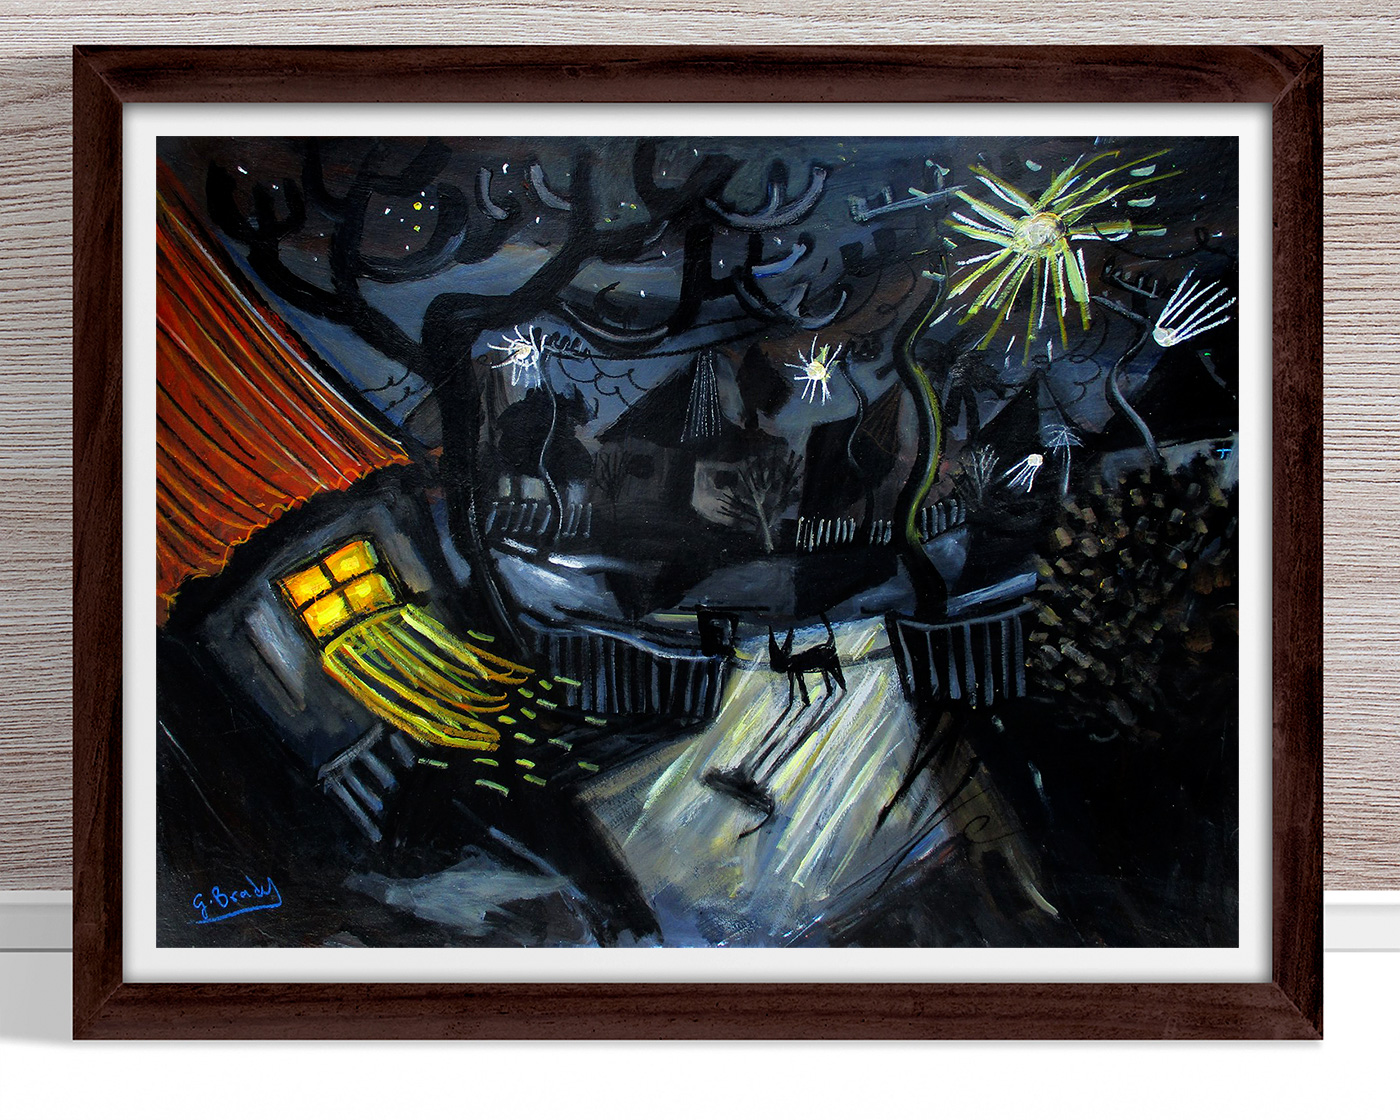 Glenn Brady - 'Cat in the Driveway' Framed